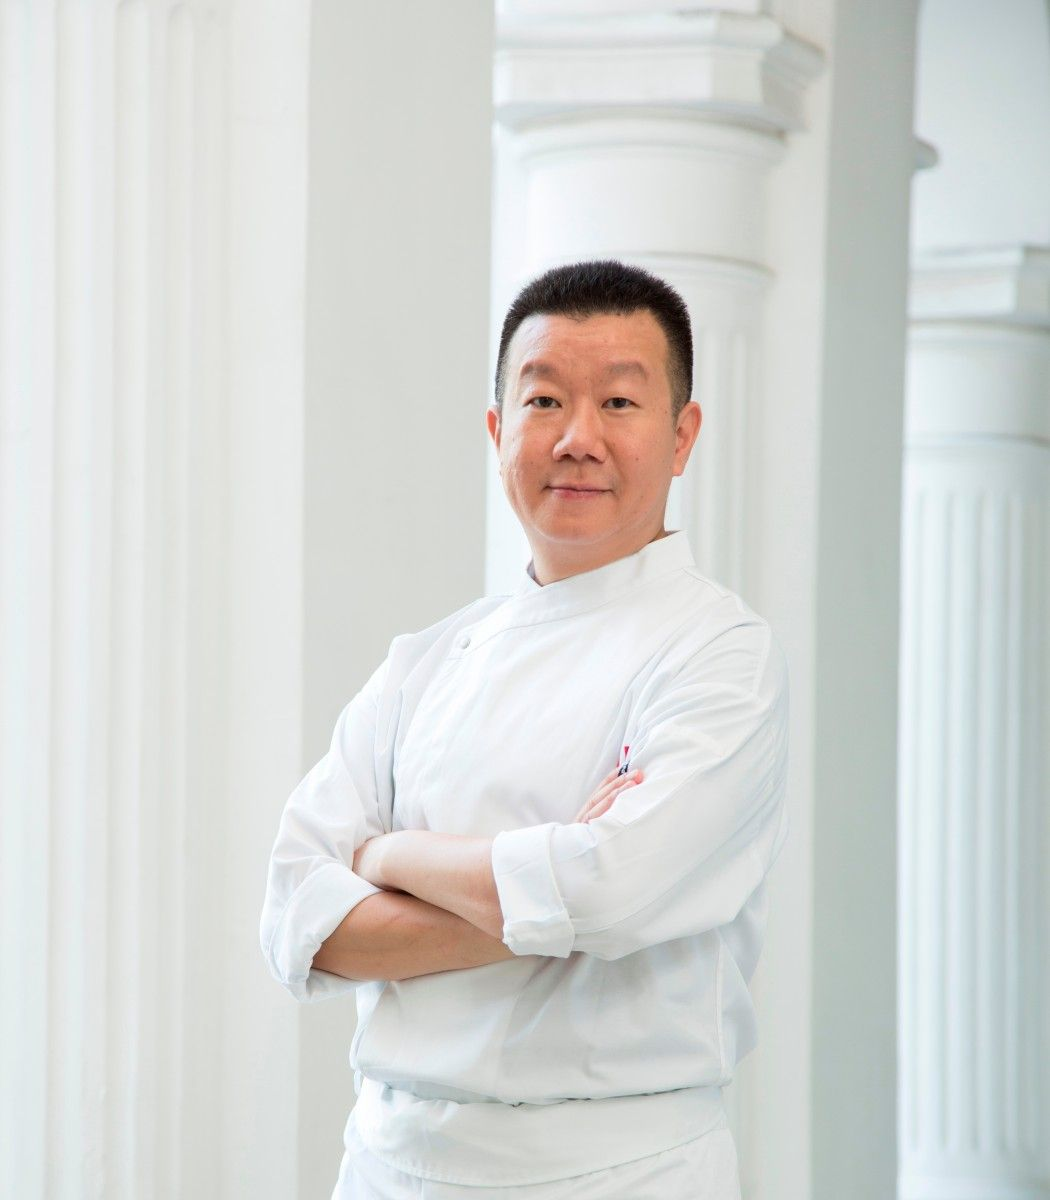 After 17 Years, Chef Jereme Leung Returns To Singapore And Opens New Restaurant, Yi, At Raffles Hotel